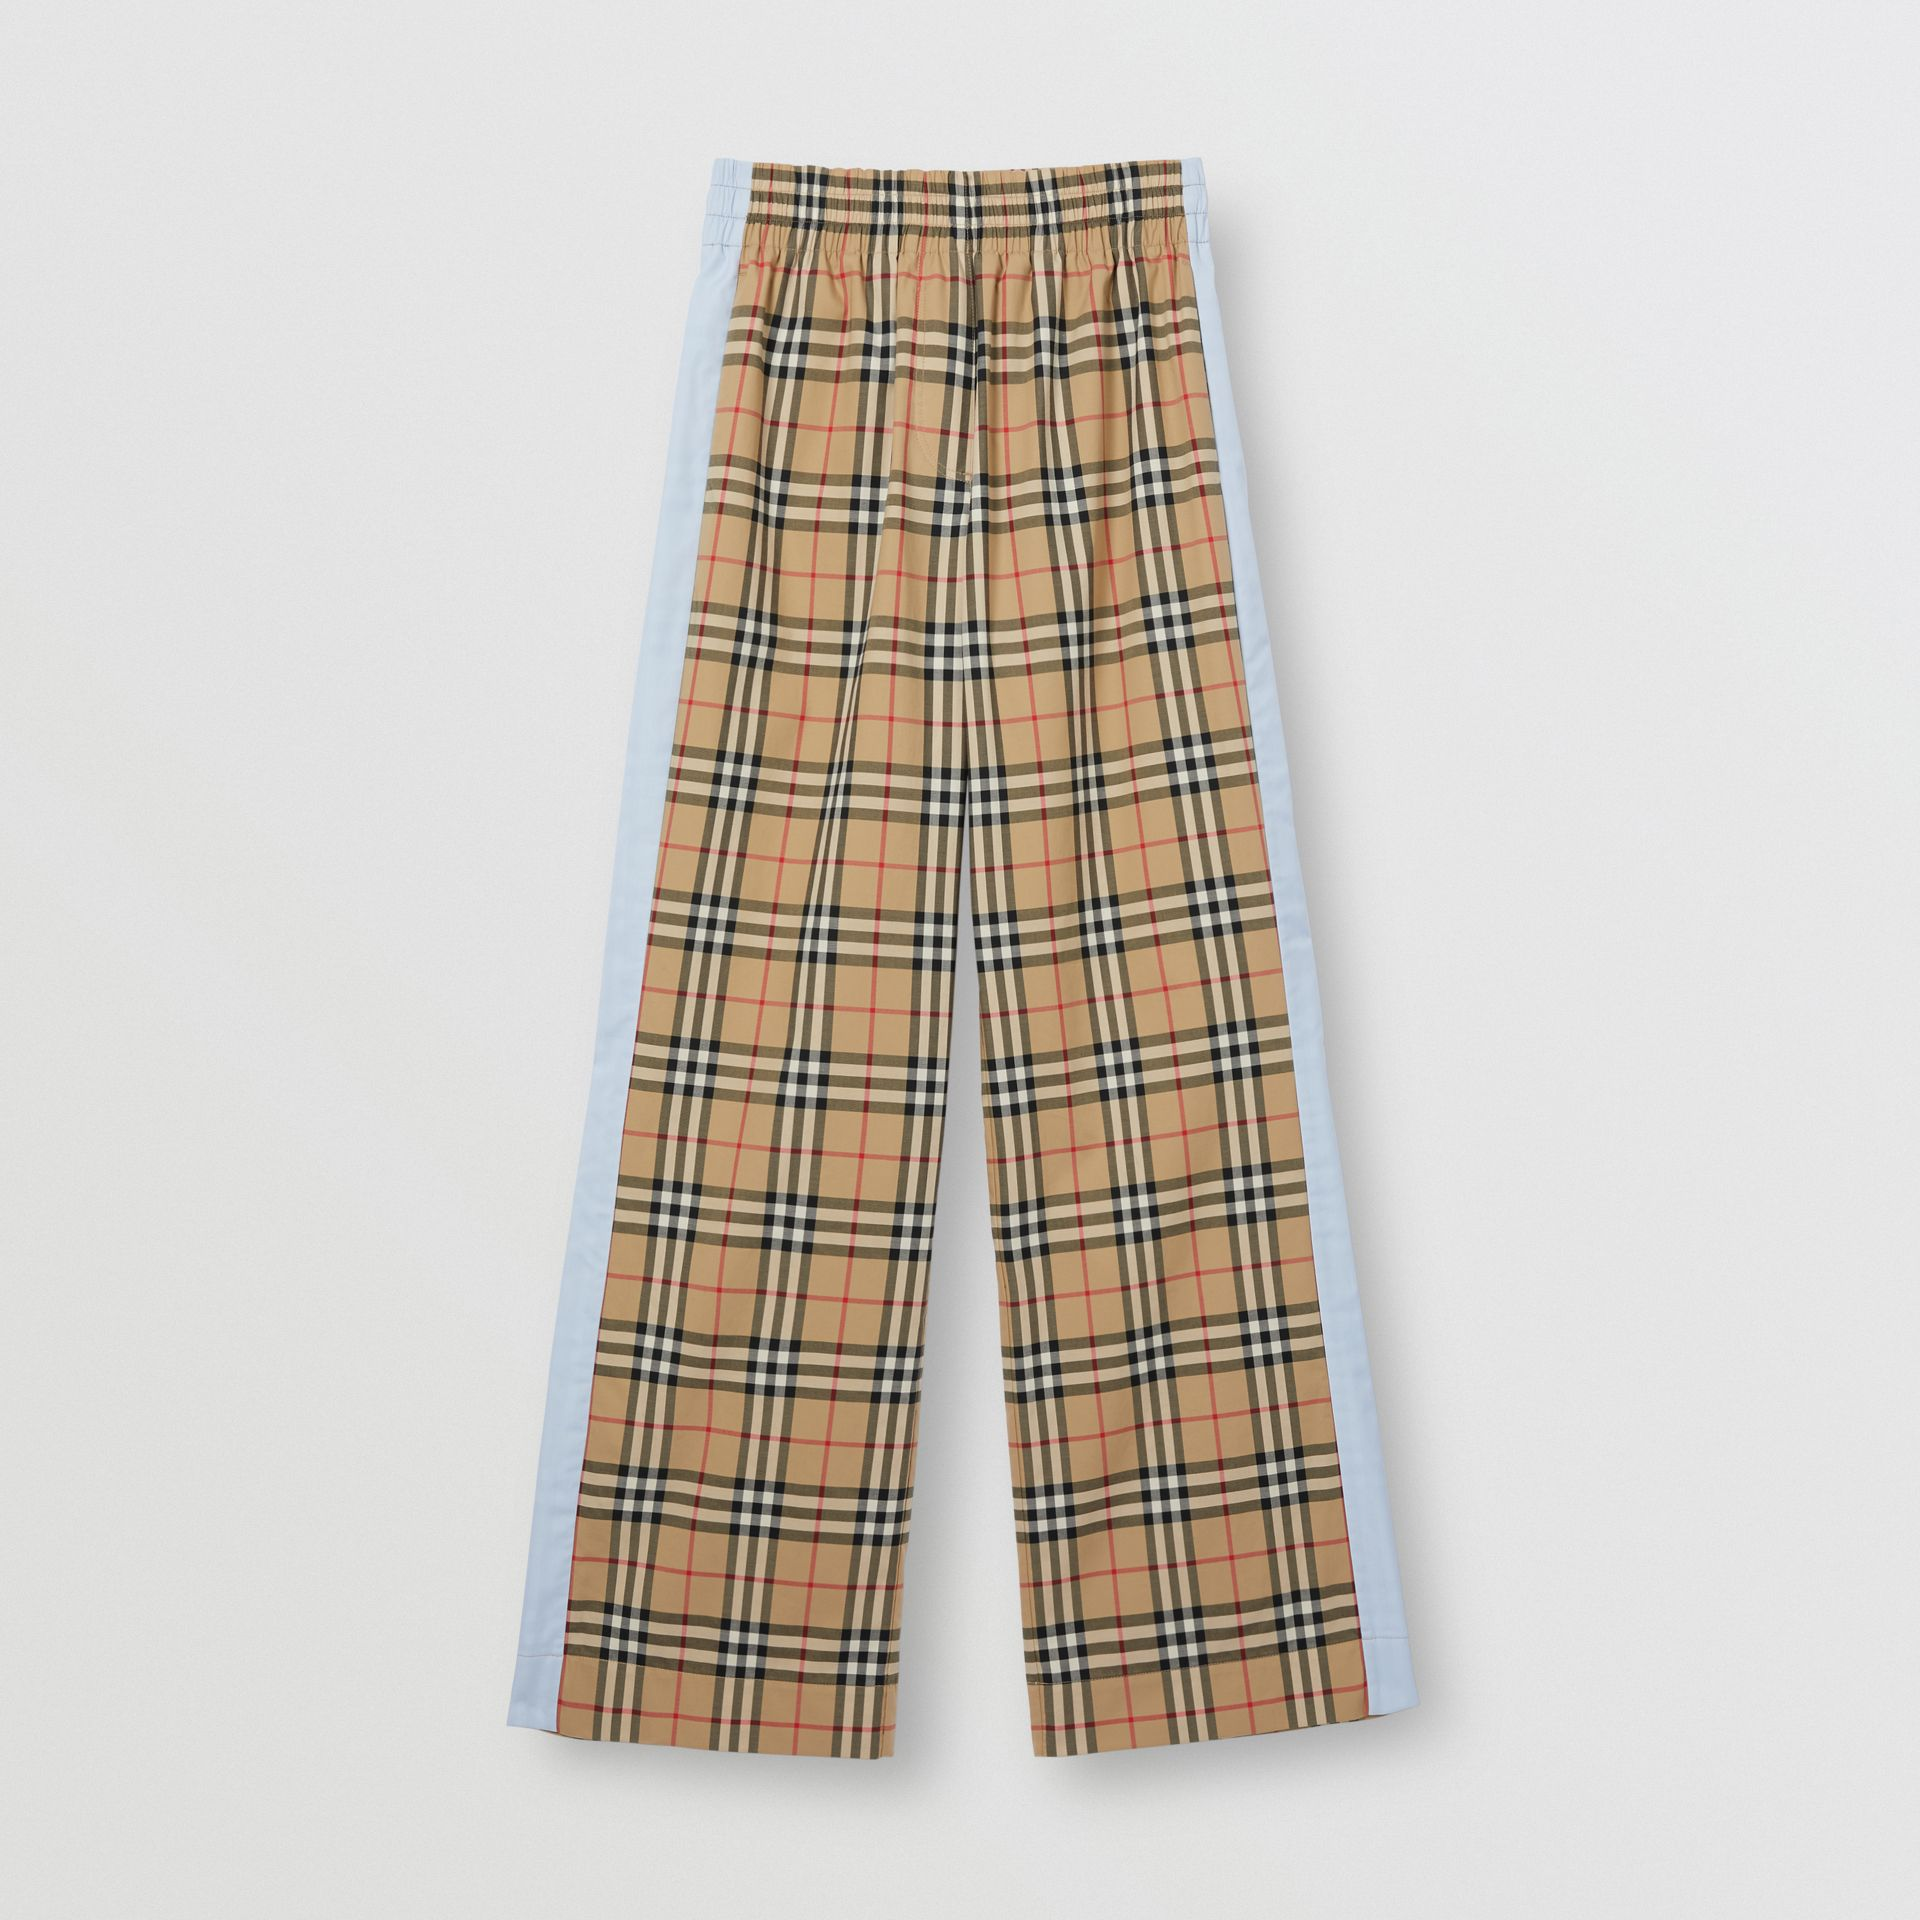 Vintage Check Stretch Cotton Trousers in Archive Beige - Women | Burberry - gallery image 3